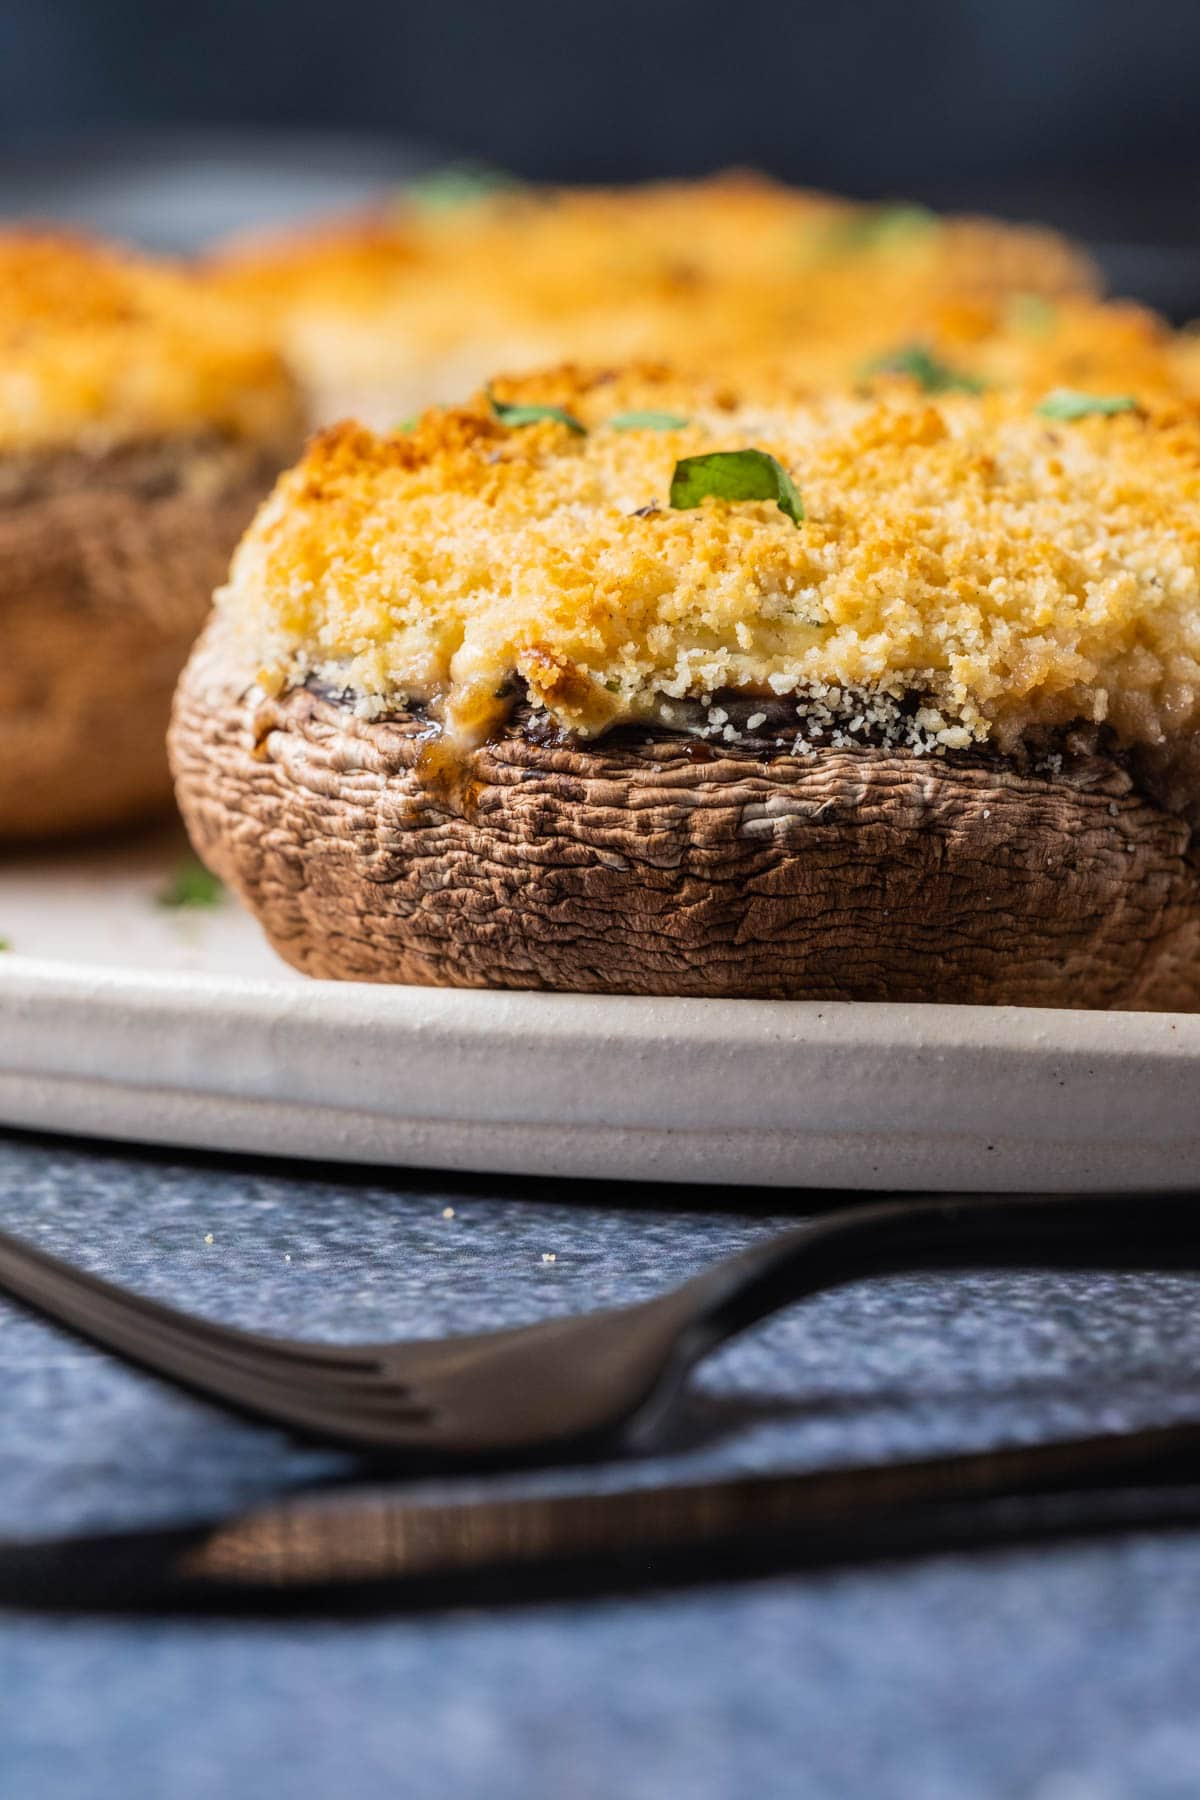 Vegetarian stuffed mushrooms on a white plate.